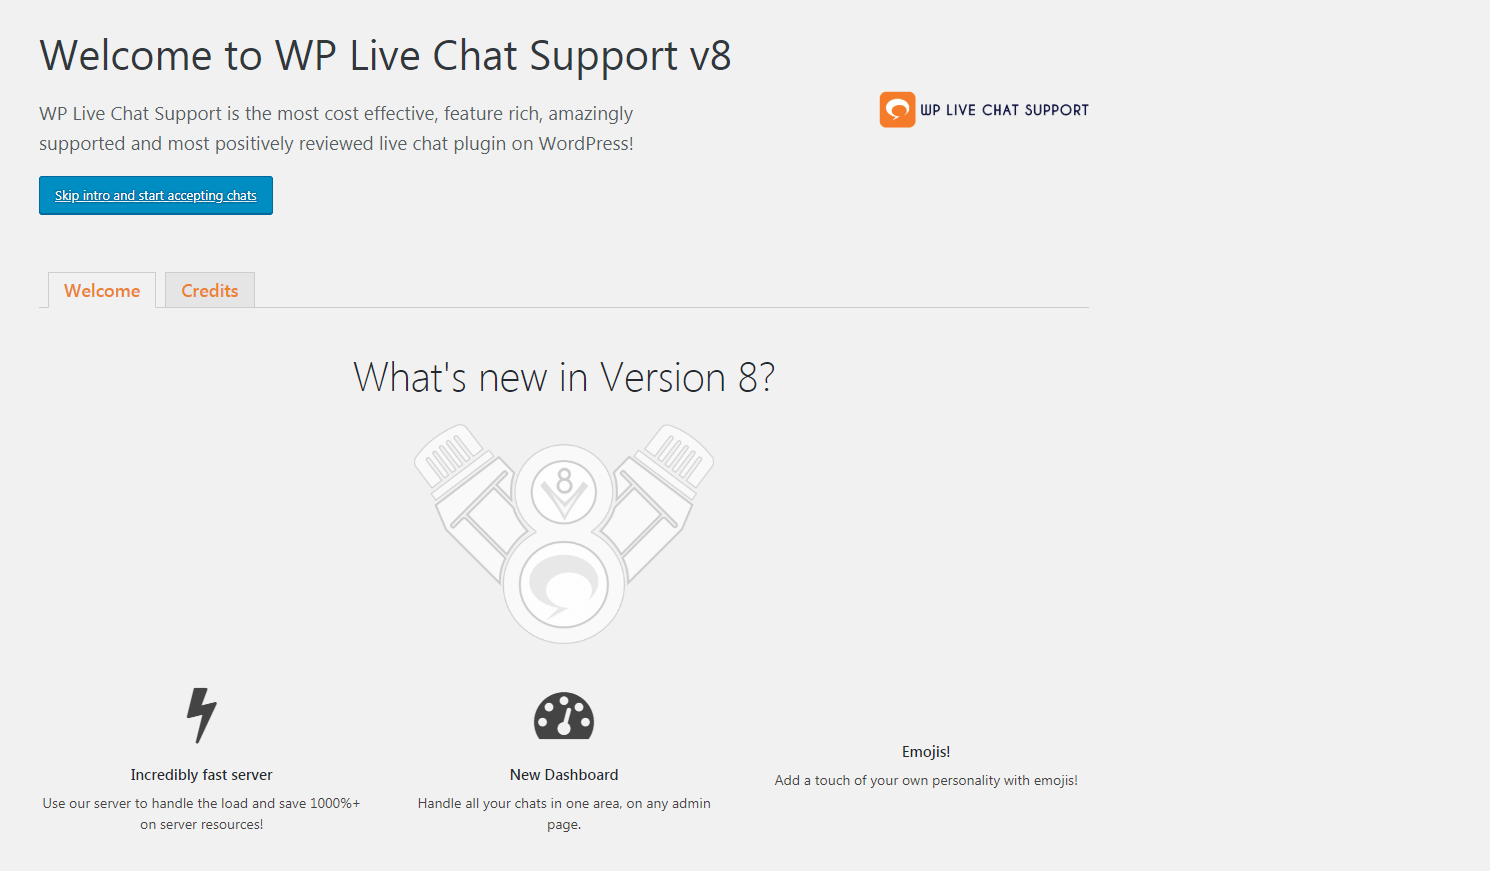 The WP Live Chat Support settings.